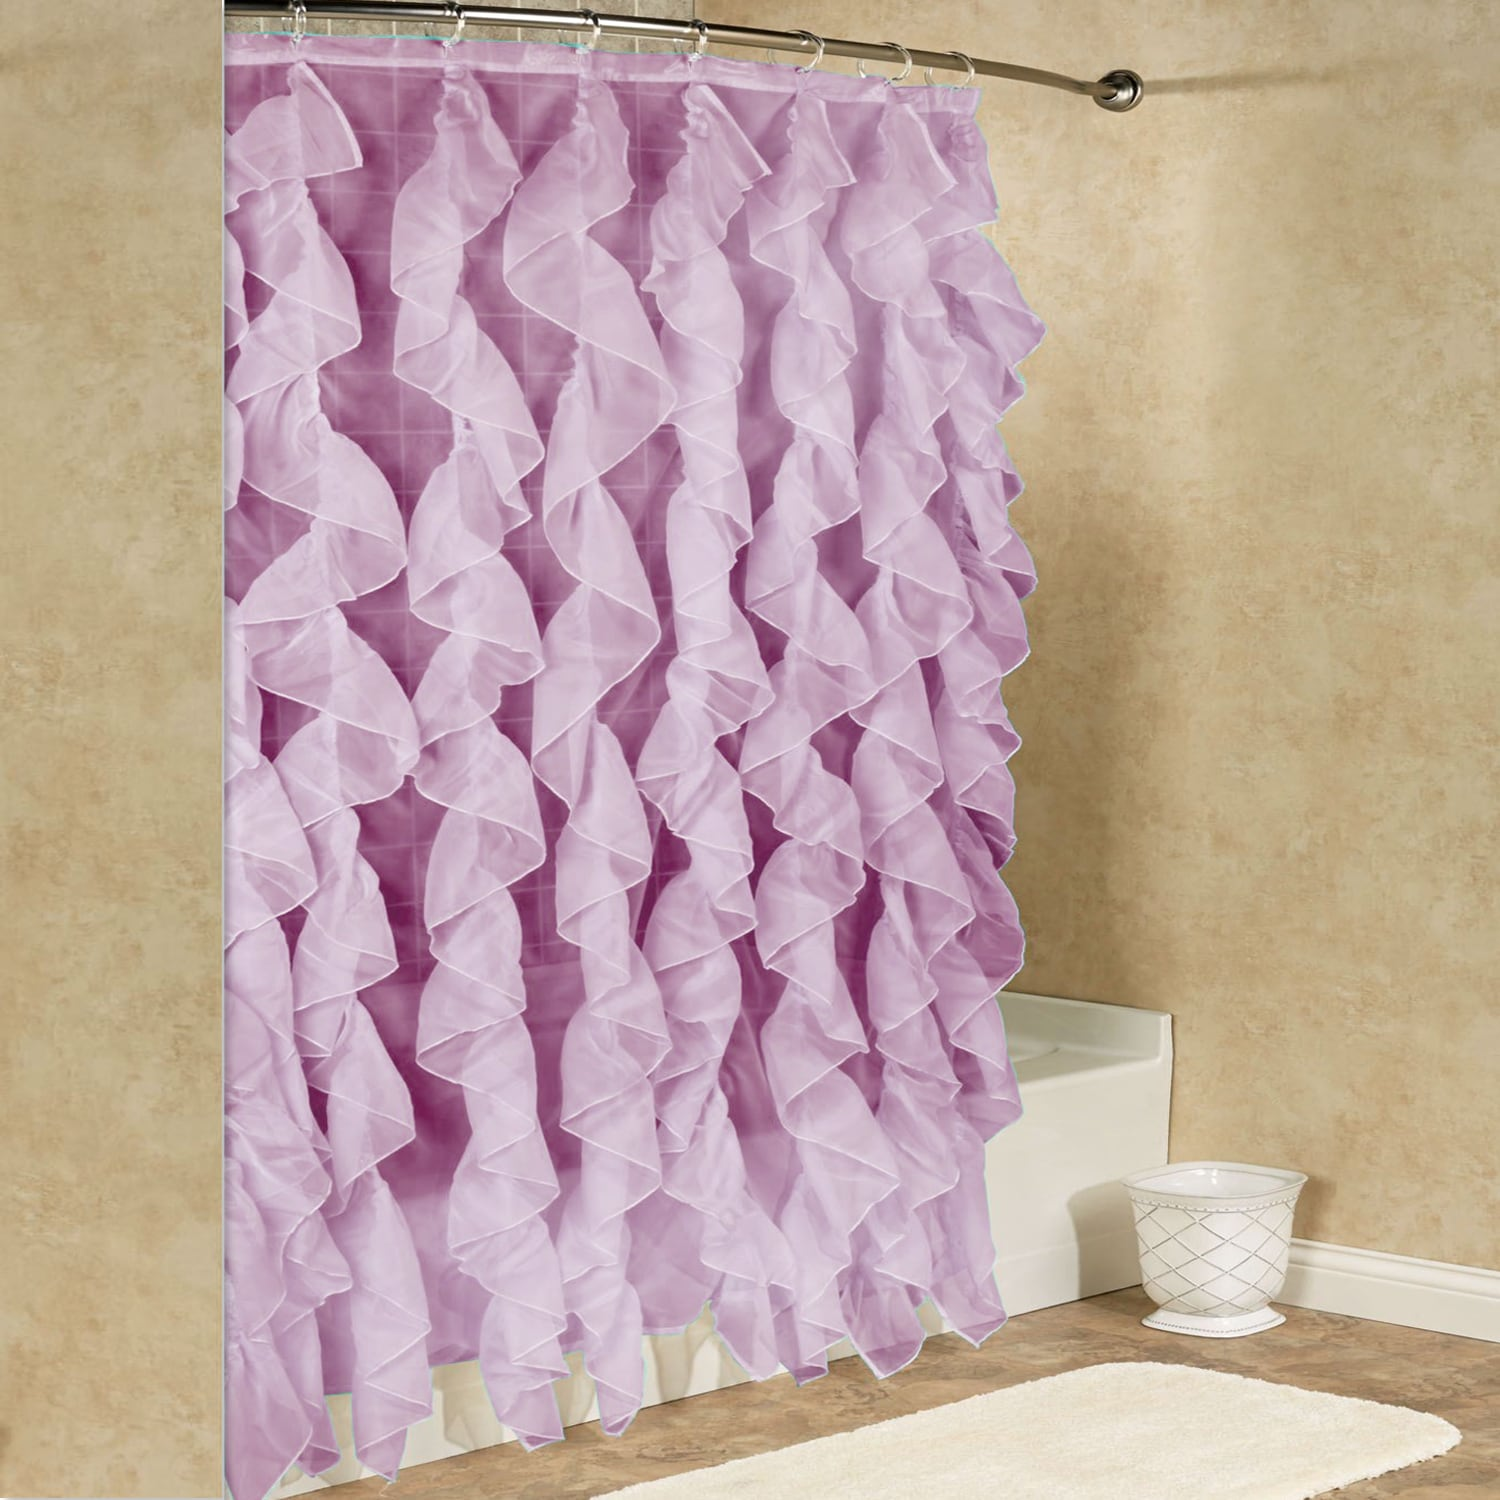 Shop Chic Sheer Voile Vertical Waterfall Ruffled Shower Curtain